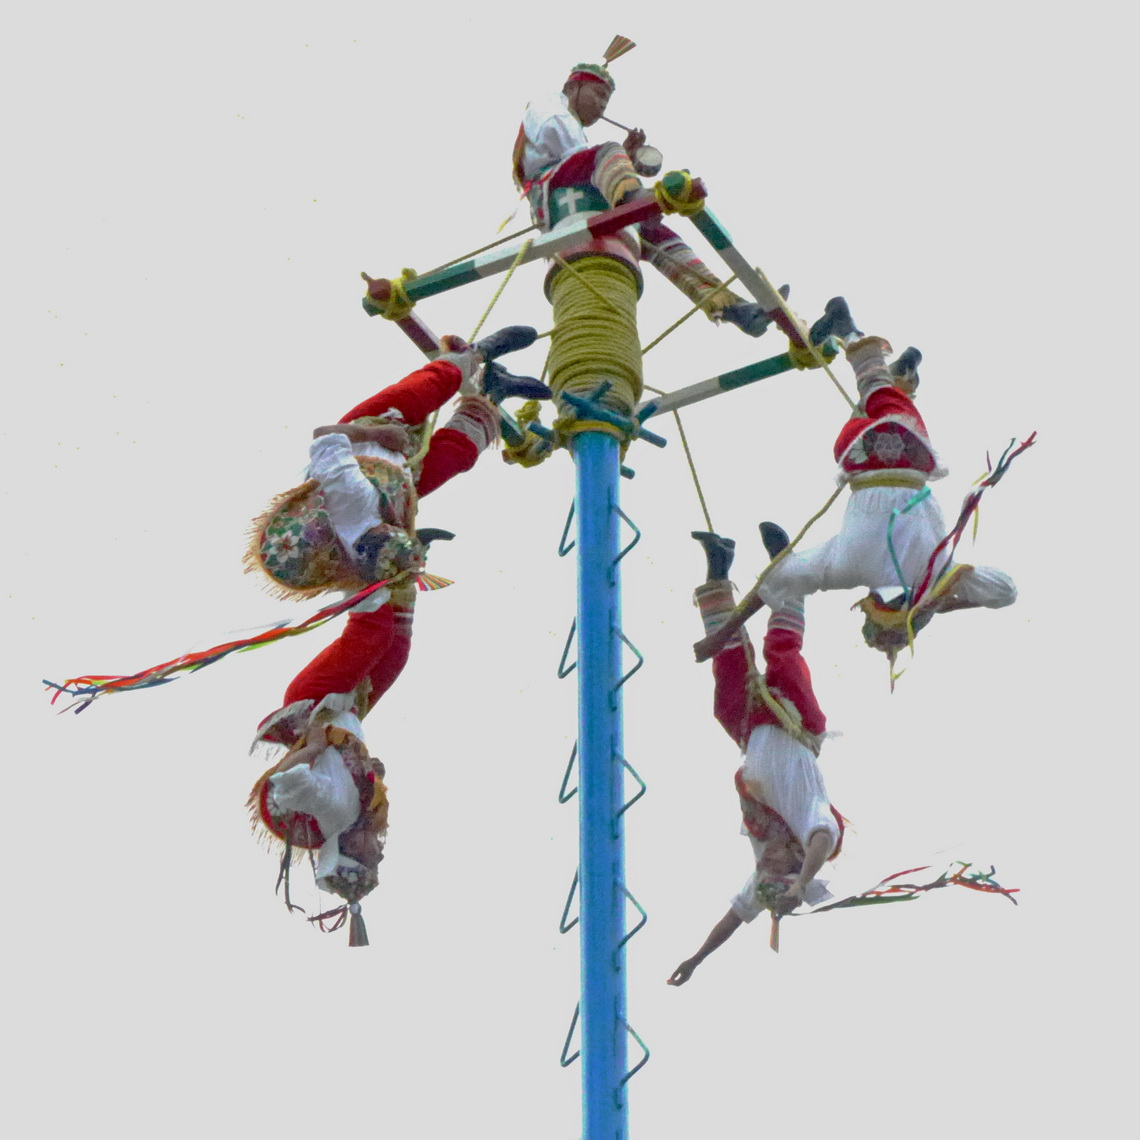 The Totonac Voladores rite